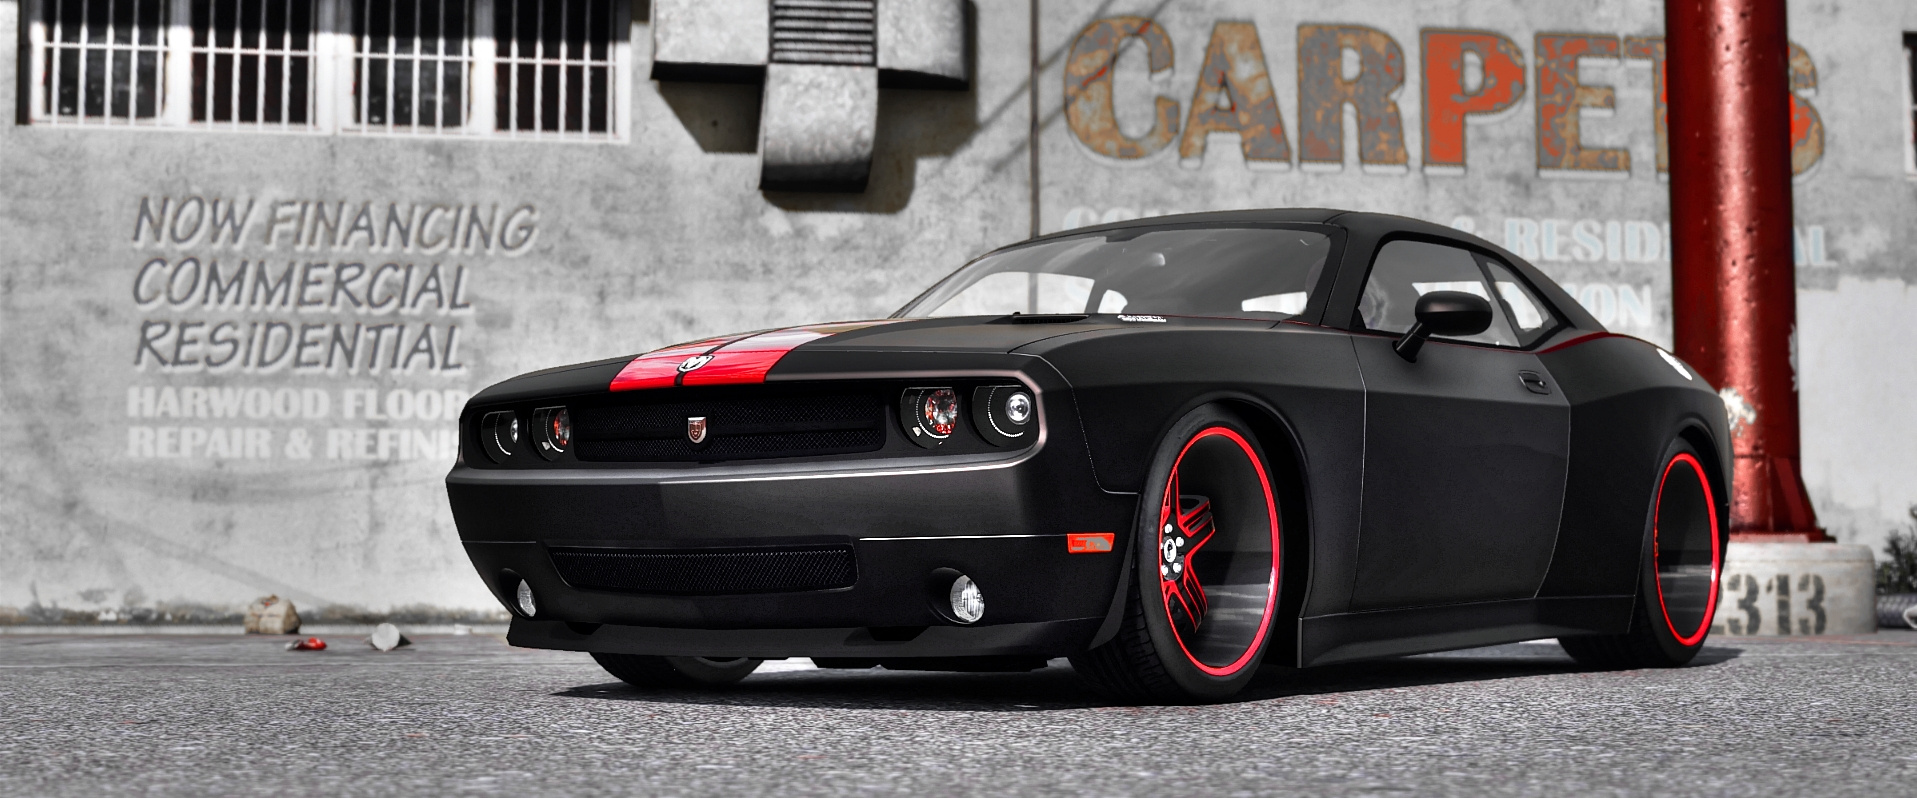 2010 dodge challenger srt8 rampage edition add on replace template gta5. Black Bedroom Furniture Sets. Home Design Ideas